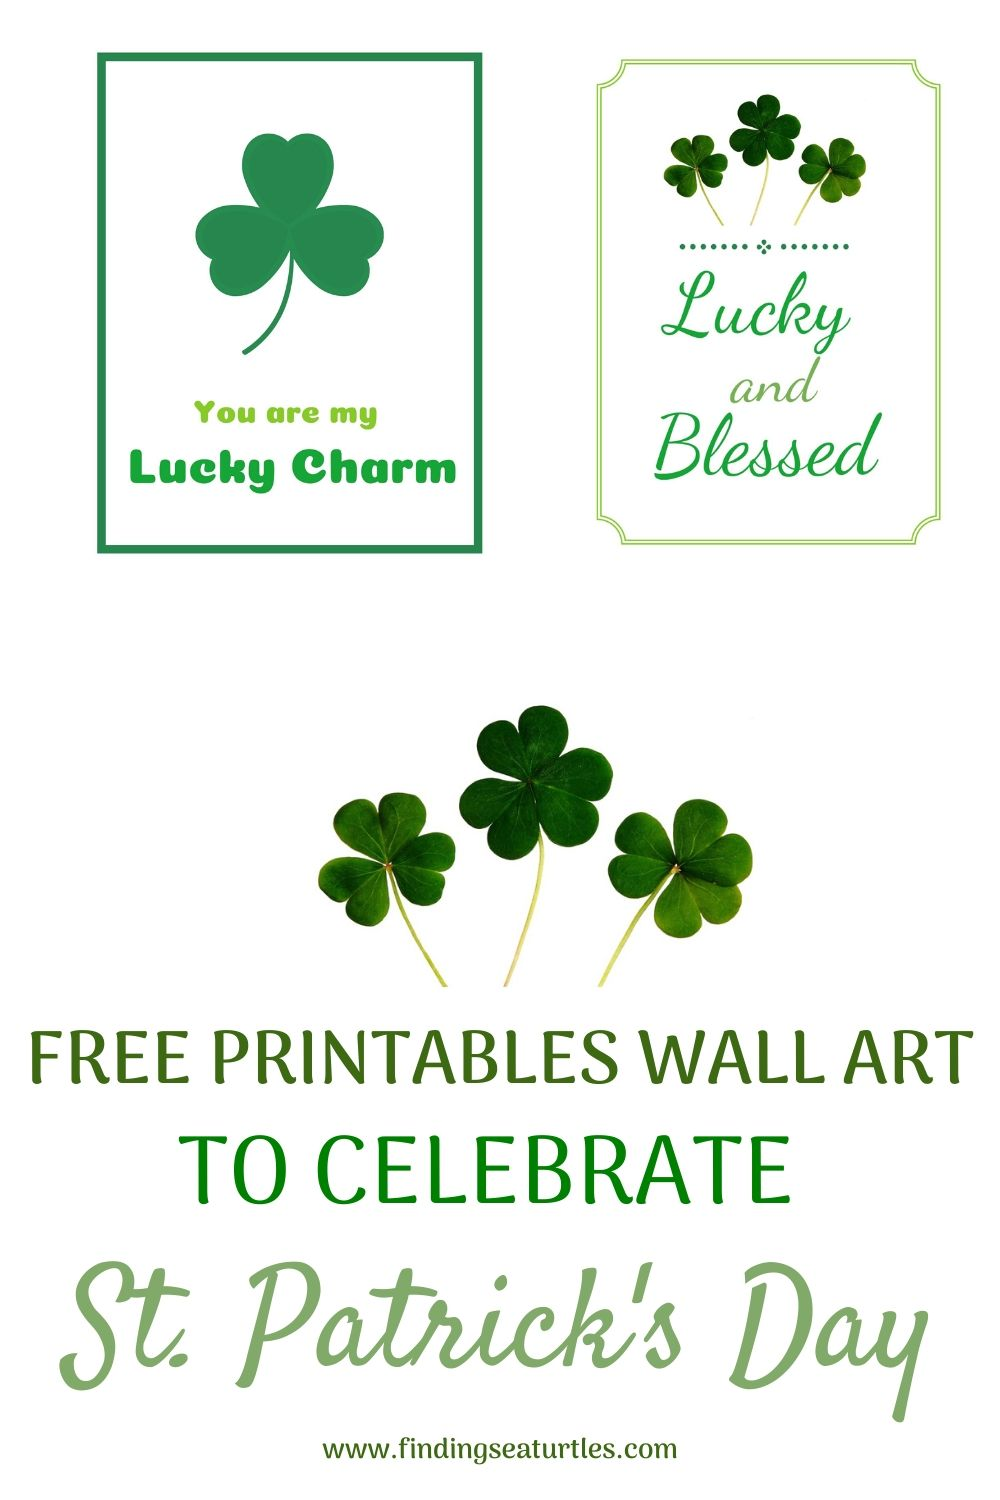 FREE PRINTABLES Wall Art to Celebrate ST PATRICK'S DAY #StPatricksDay #StPatricksWallArt #DIY #WallArt #DIYDecor